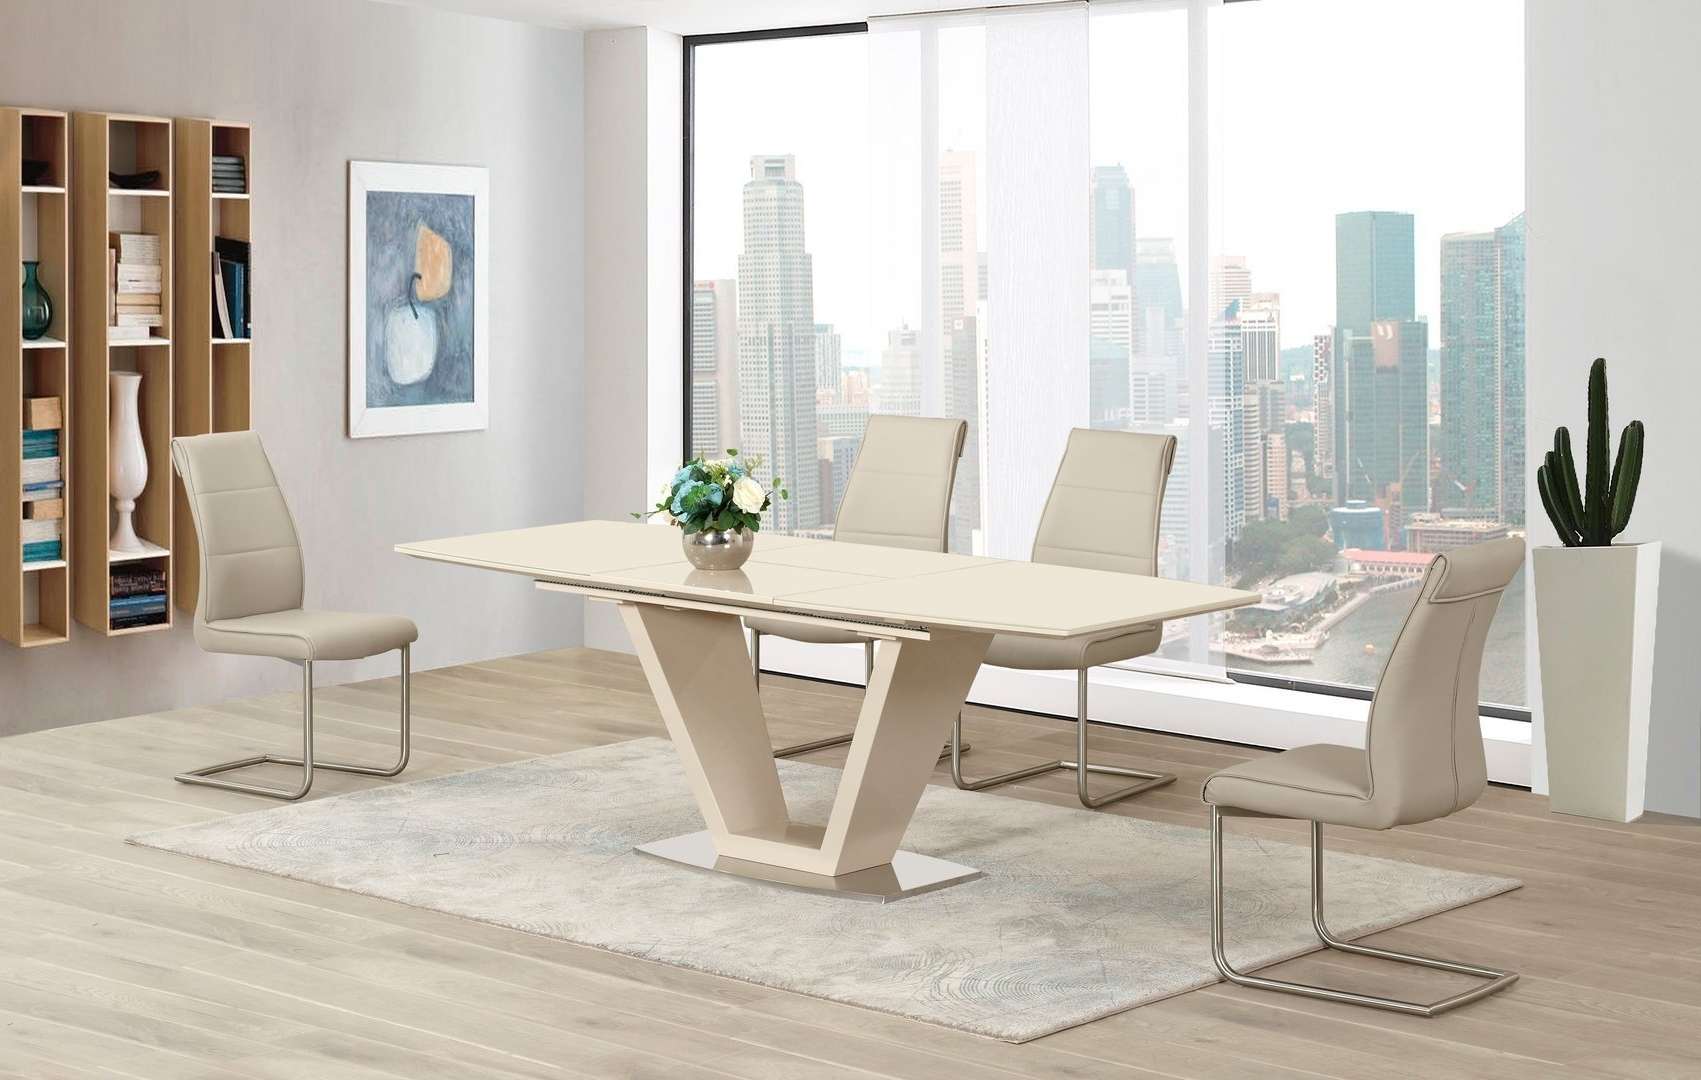 Cream Extending Glass High Gloss Dining Table And 4 Taupe Chairs Set Within Trendy High Gloss Dining Furniture (View 11 of 25)